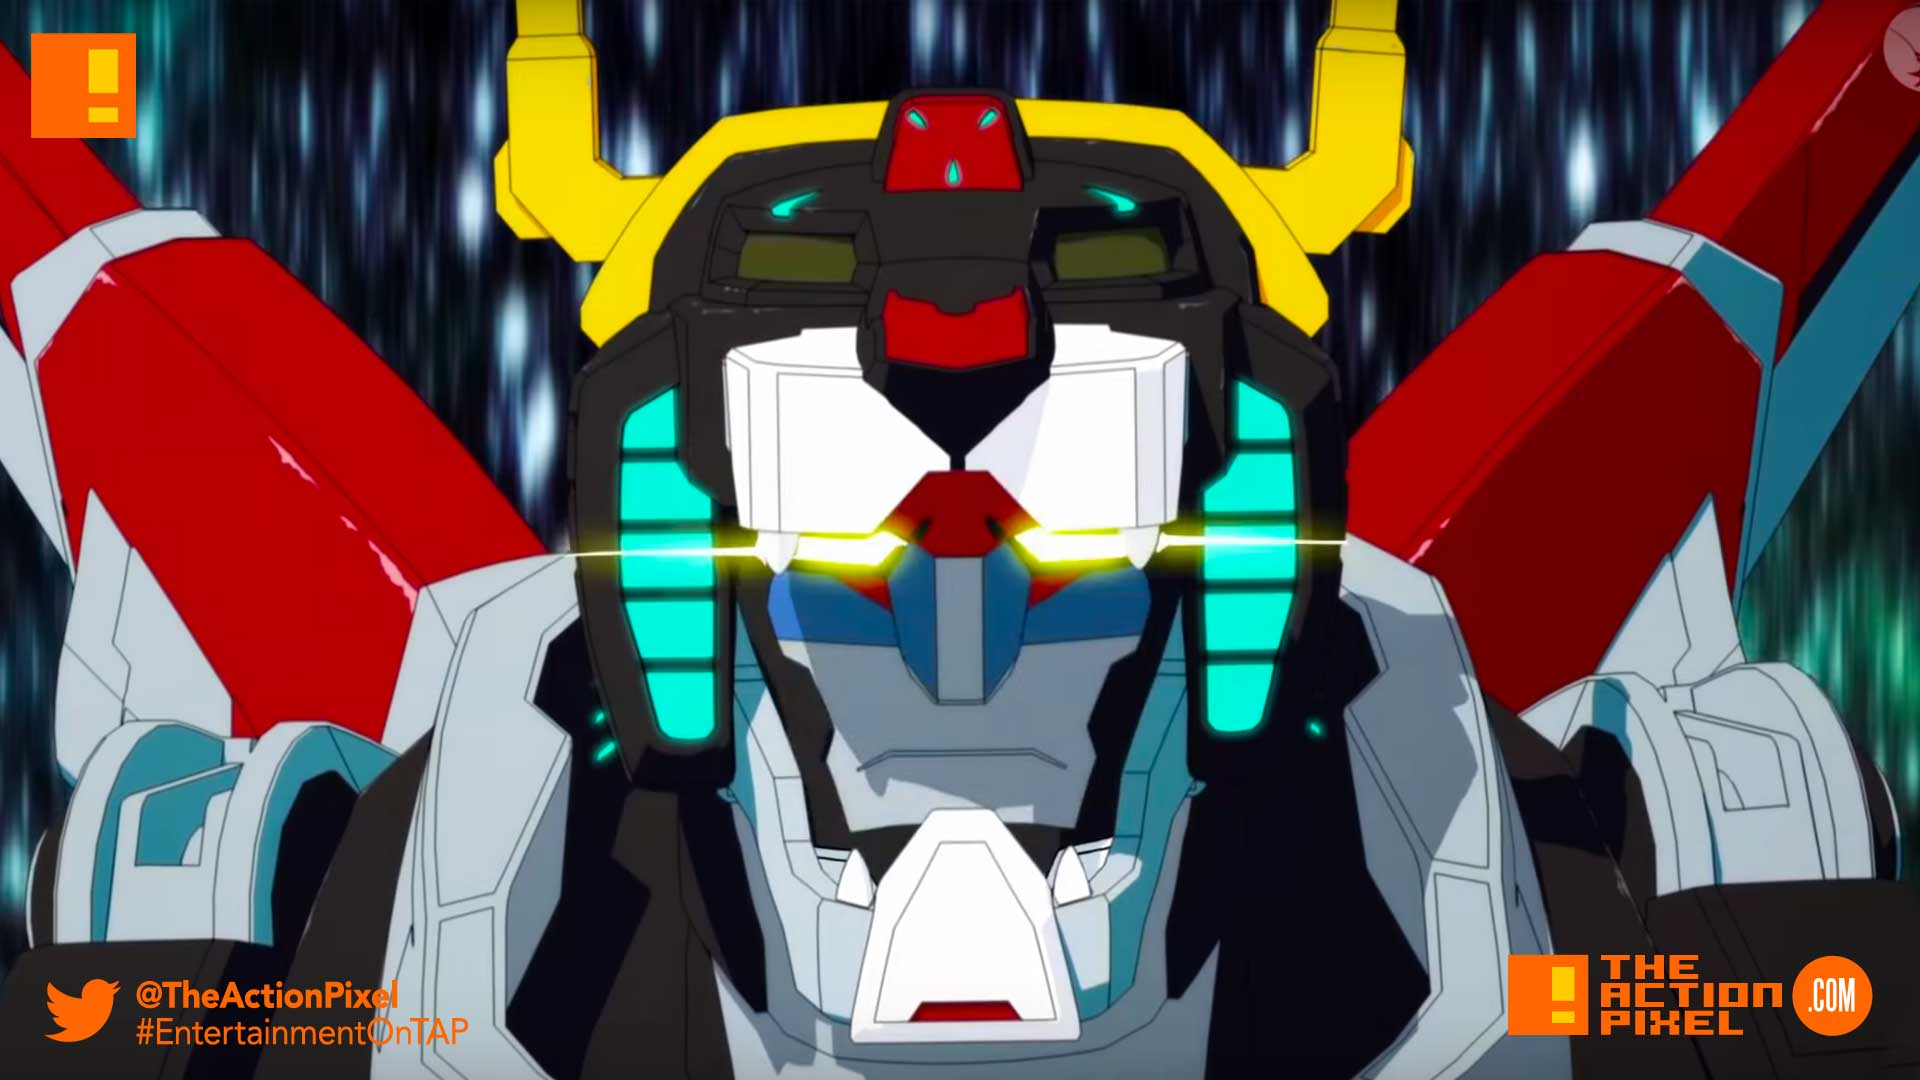 voltron, voltron: legendary defender, voltron season 8, dreamworks tv, dreamworks, netflix, paladins, trailer, entertainment on tap, the action pixel